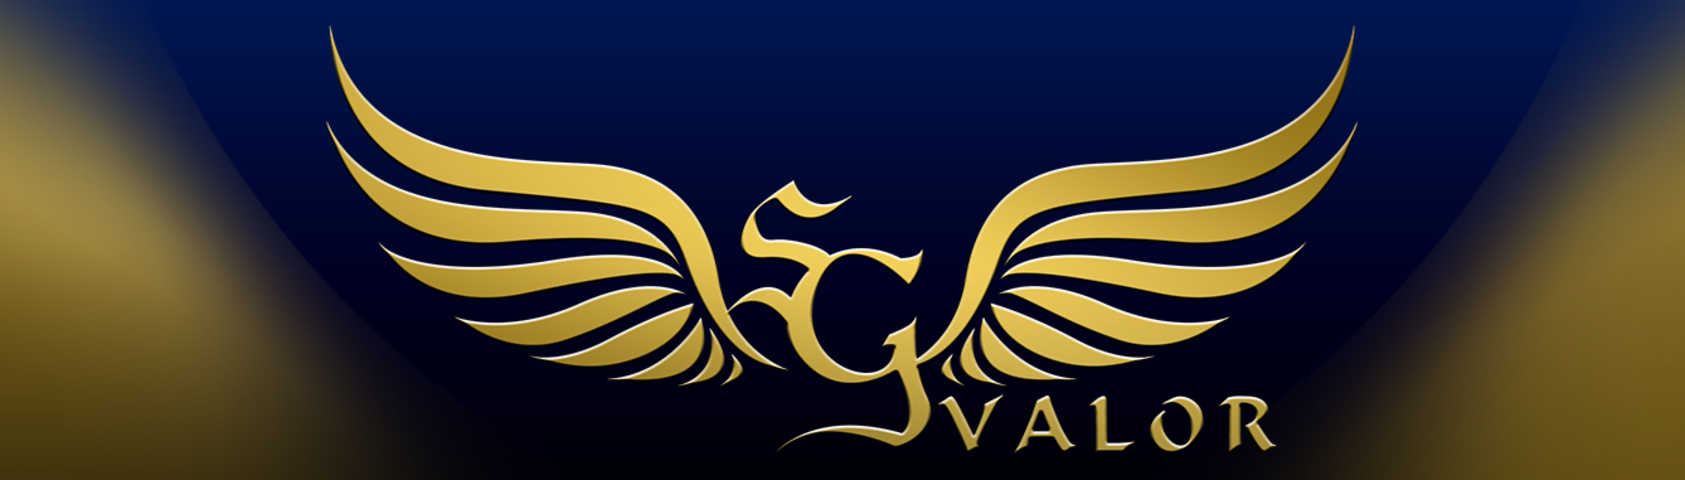 sgvalor